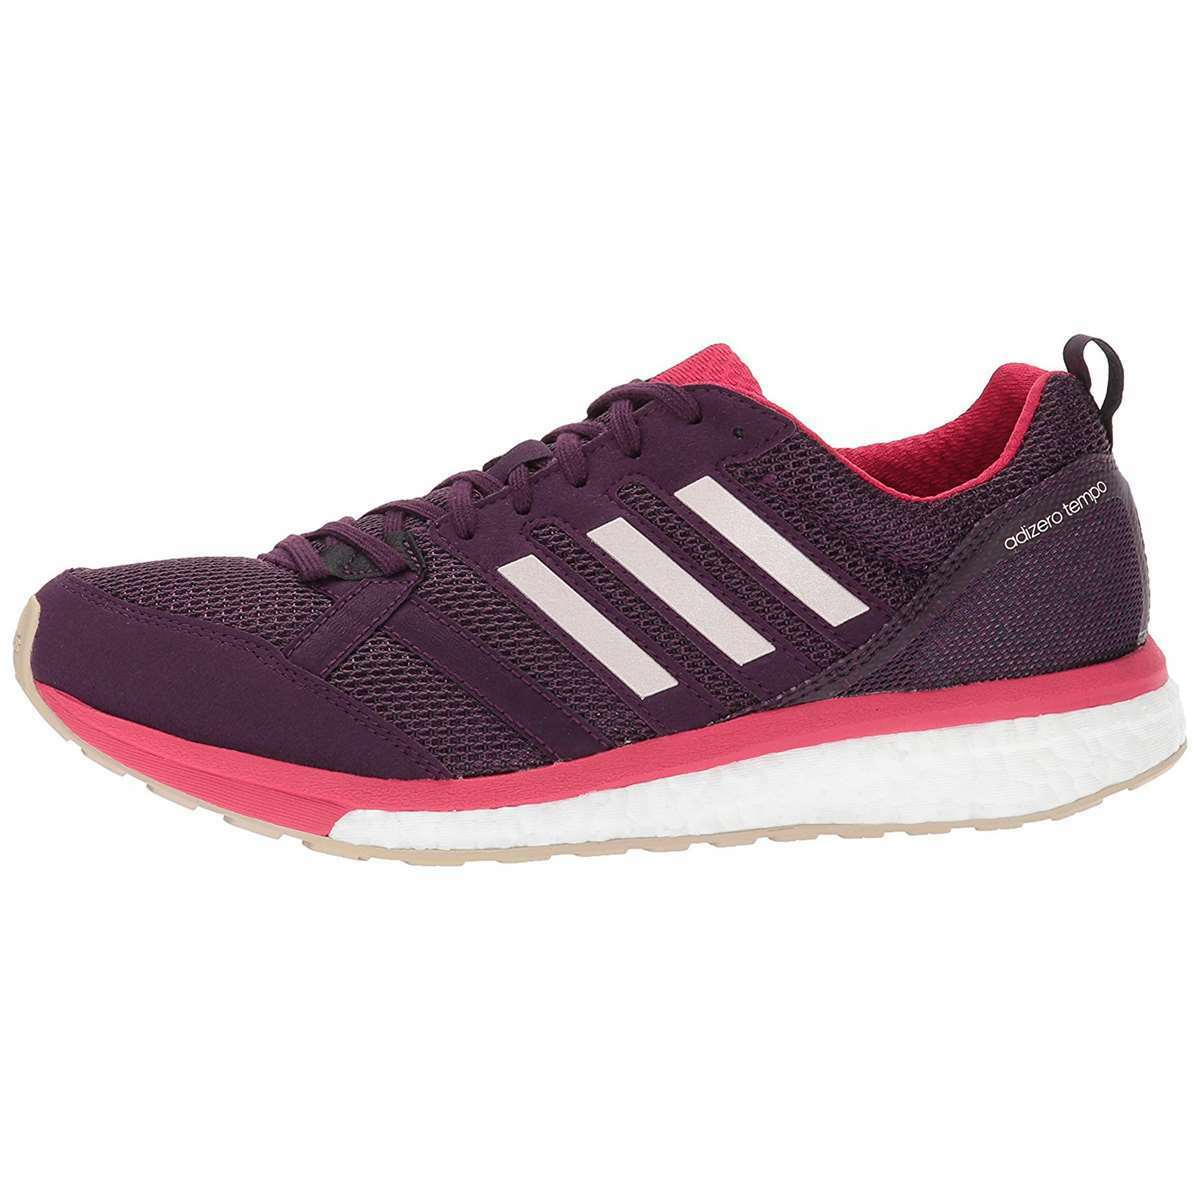 Womens ADIDAS Sneakers ADIZERO TEMPO 9 Red Night Running Shoes NEW 1